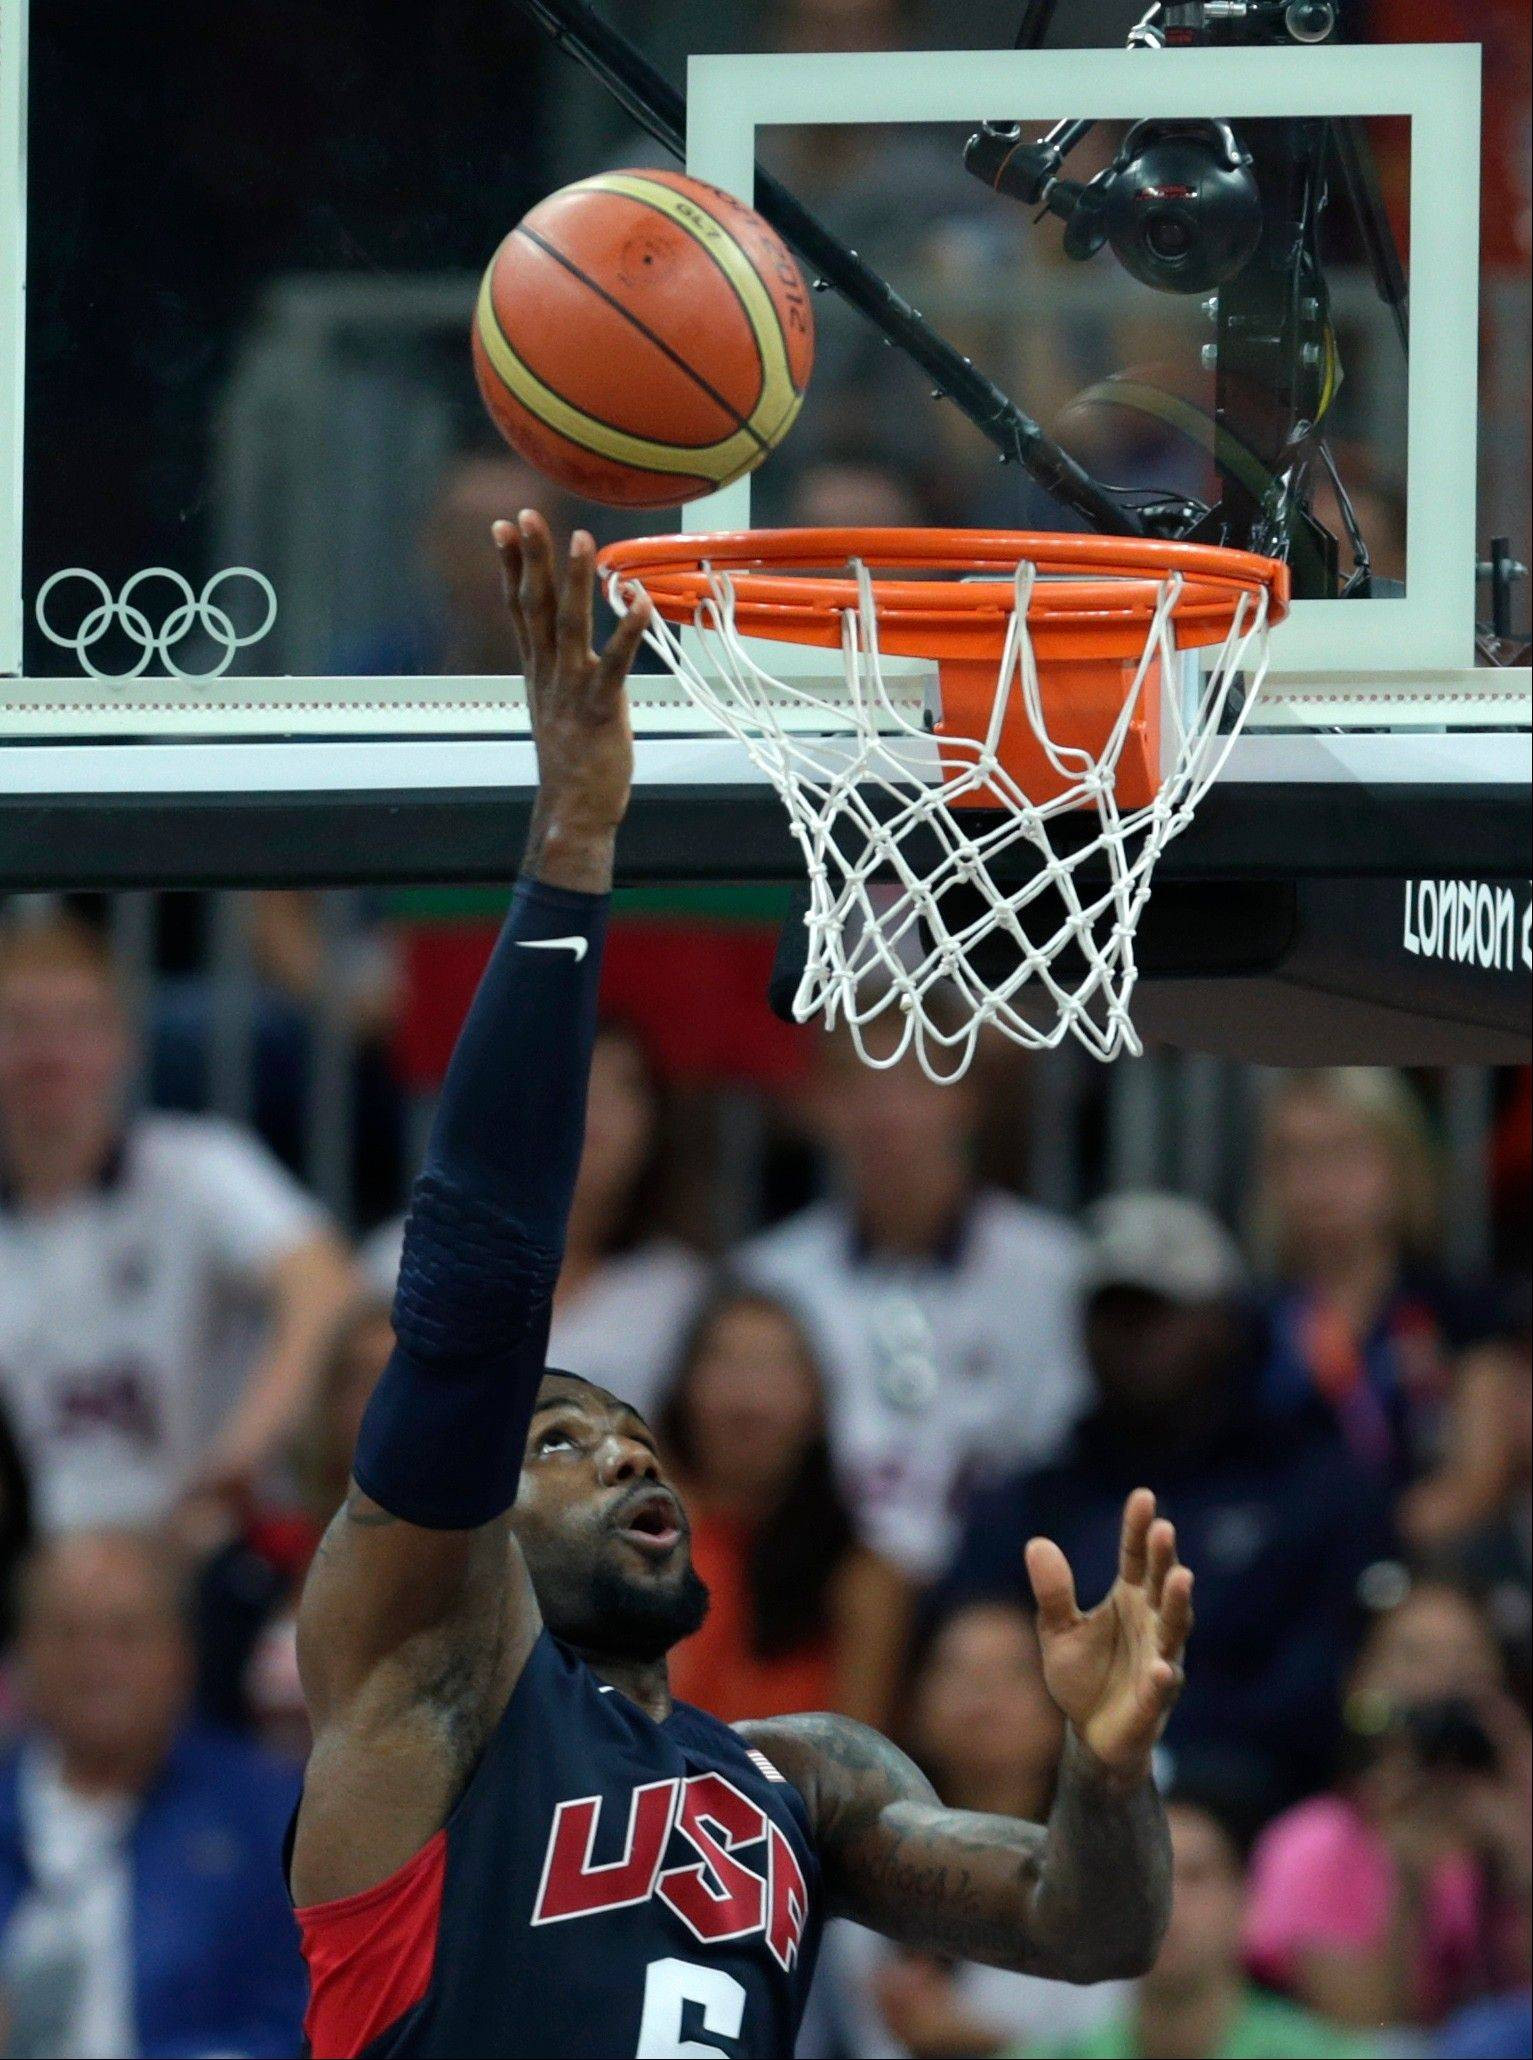 LeBron James and Team USA defeated Lithuania 99-94 on Saturday, but is it unpatriotic to really care which team won?